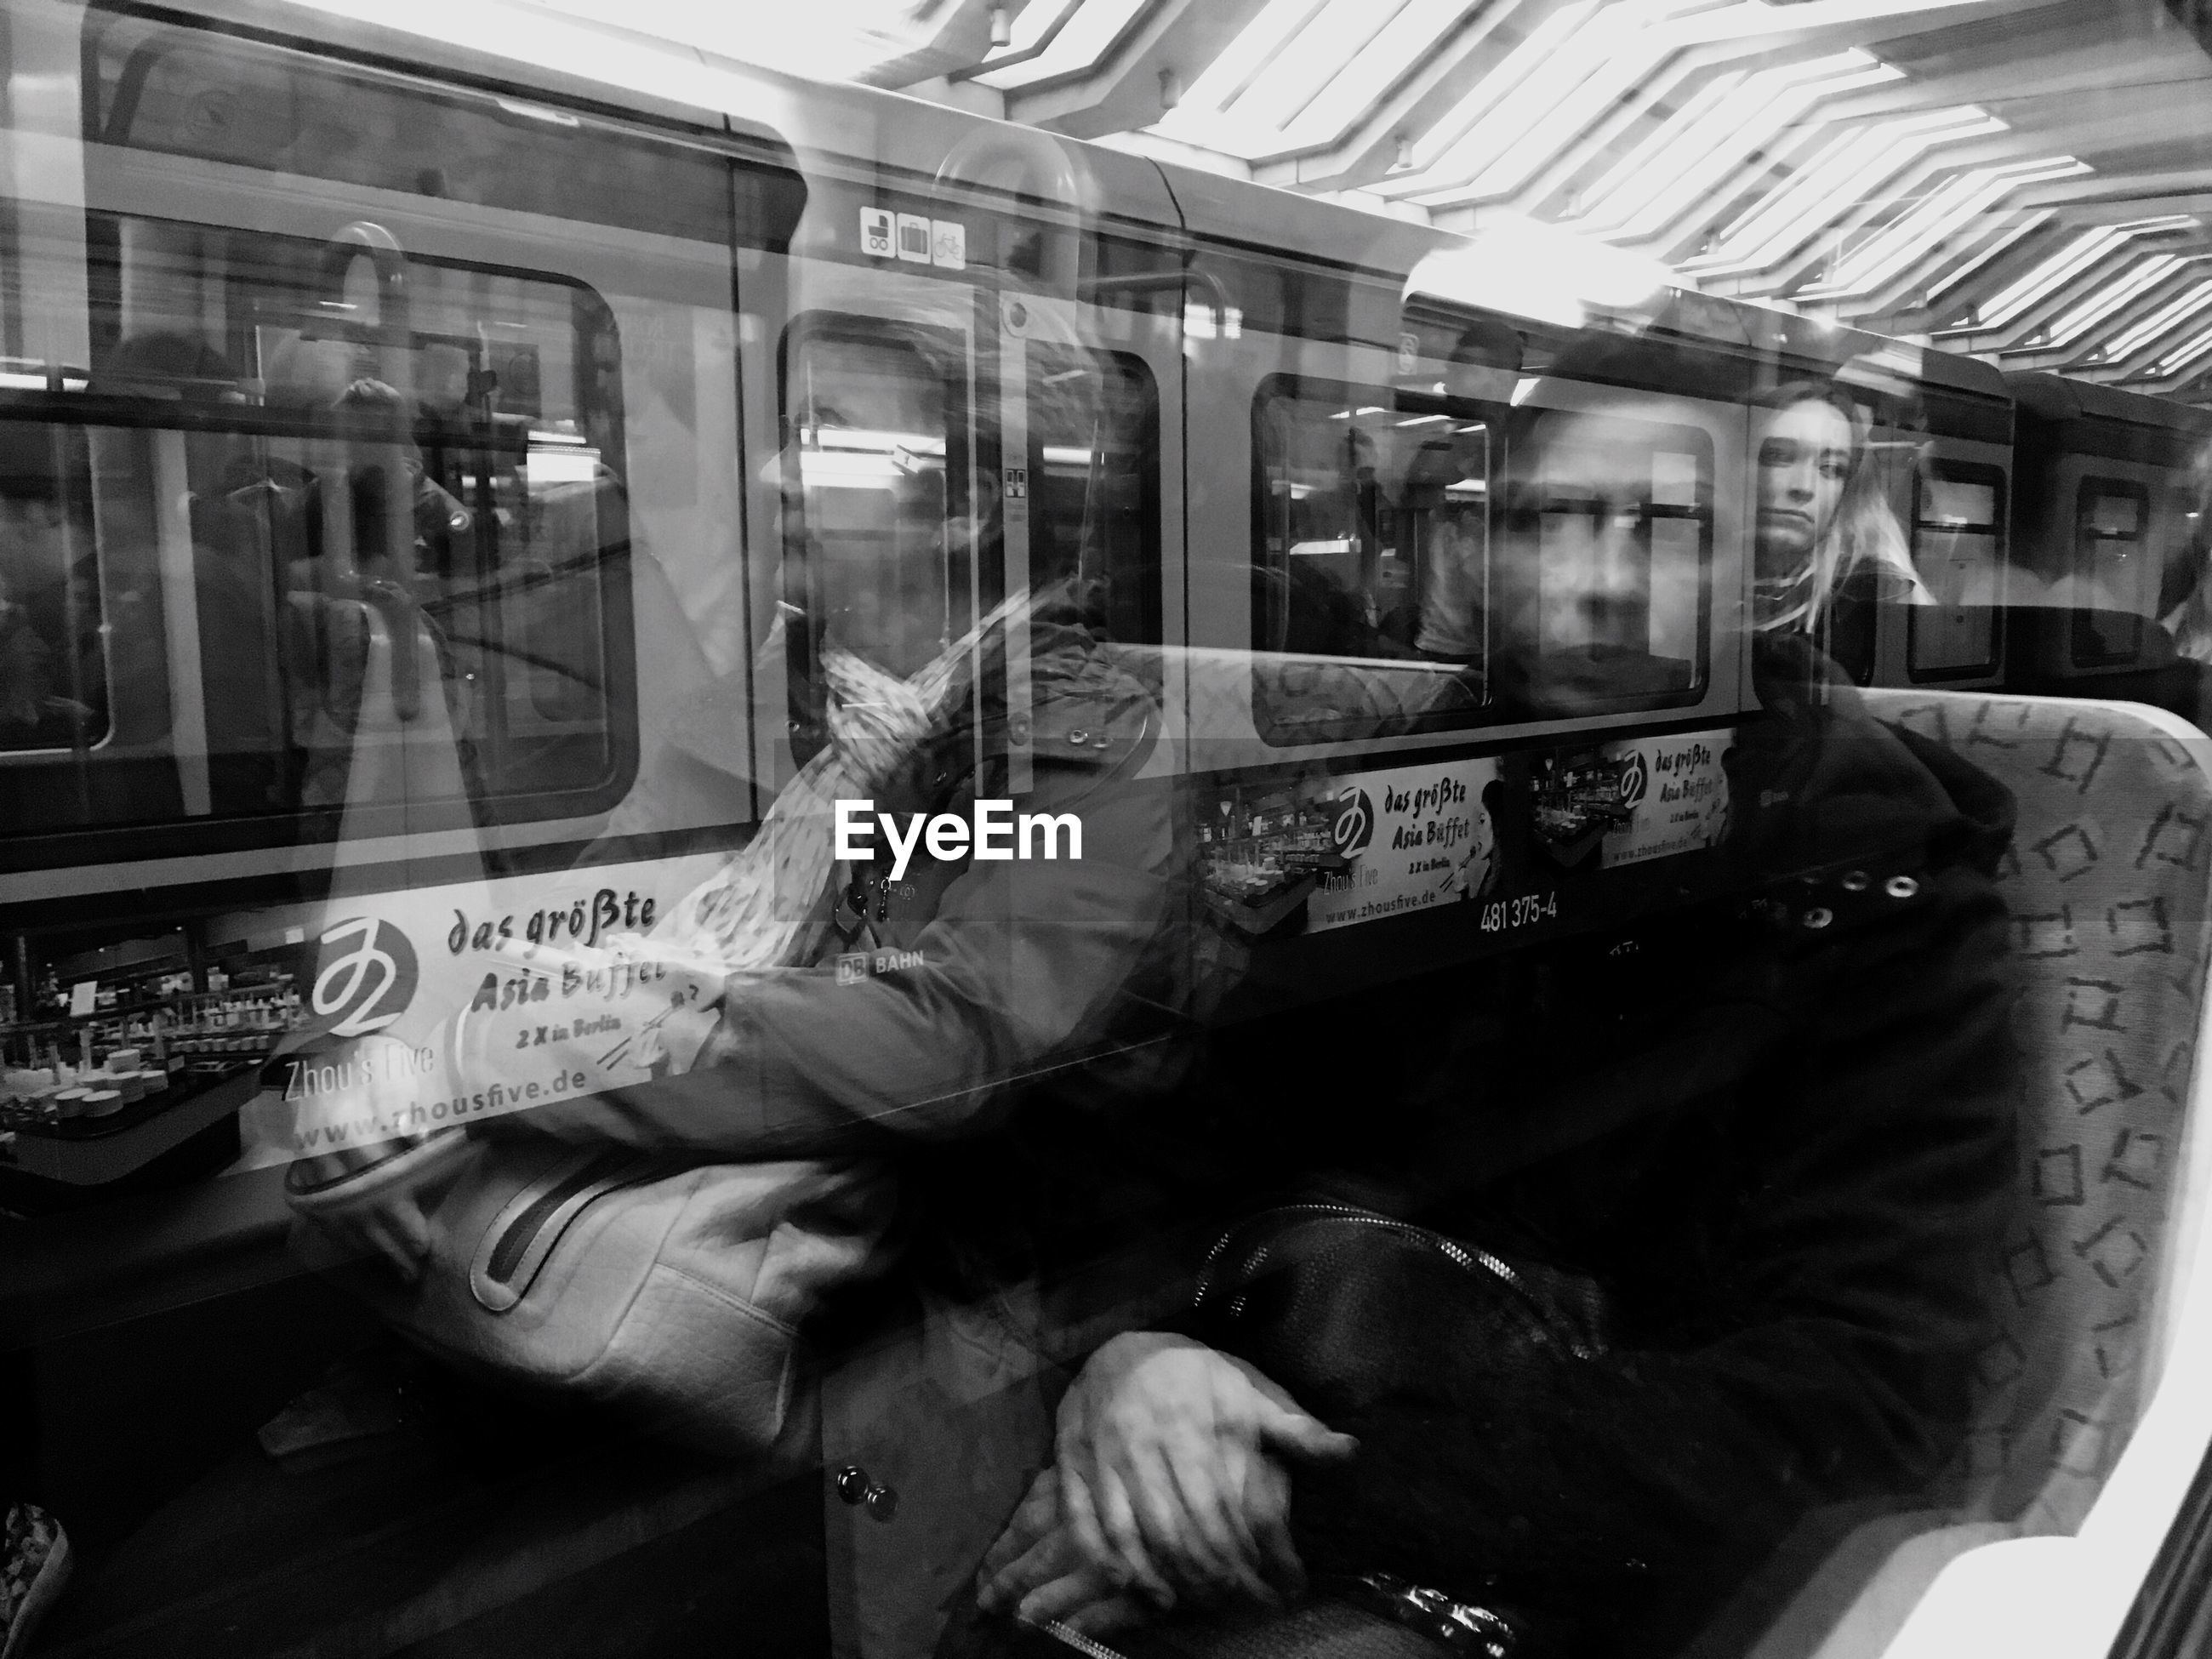 REFLECTION OF MAN SITTING IN TRAIN AT BUS